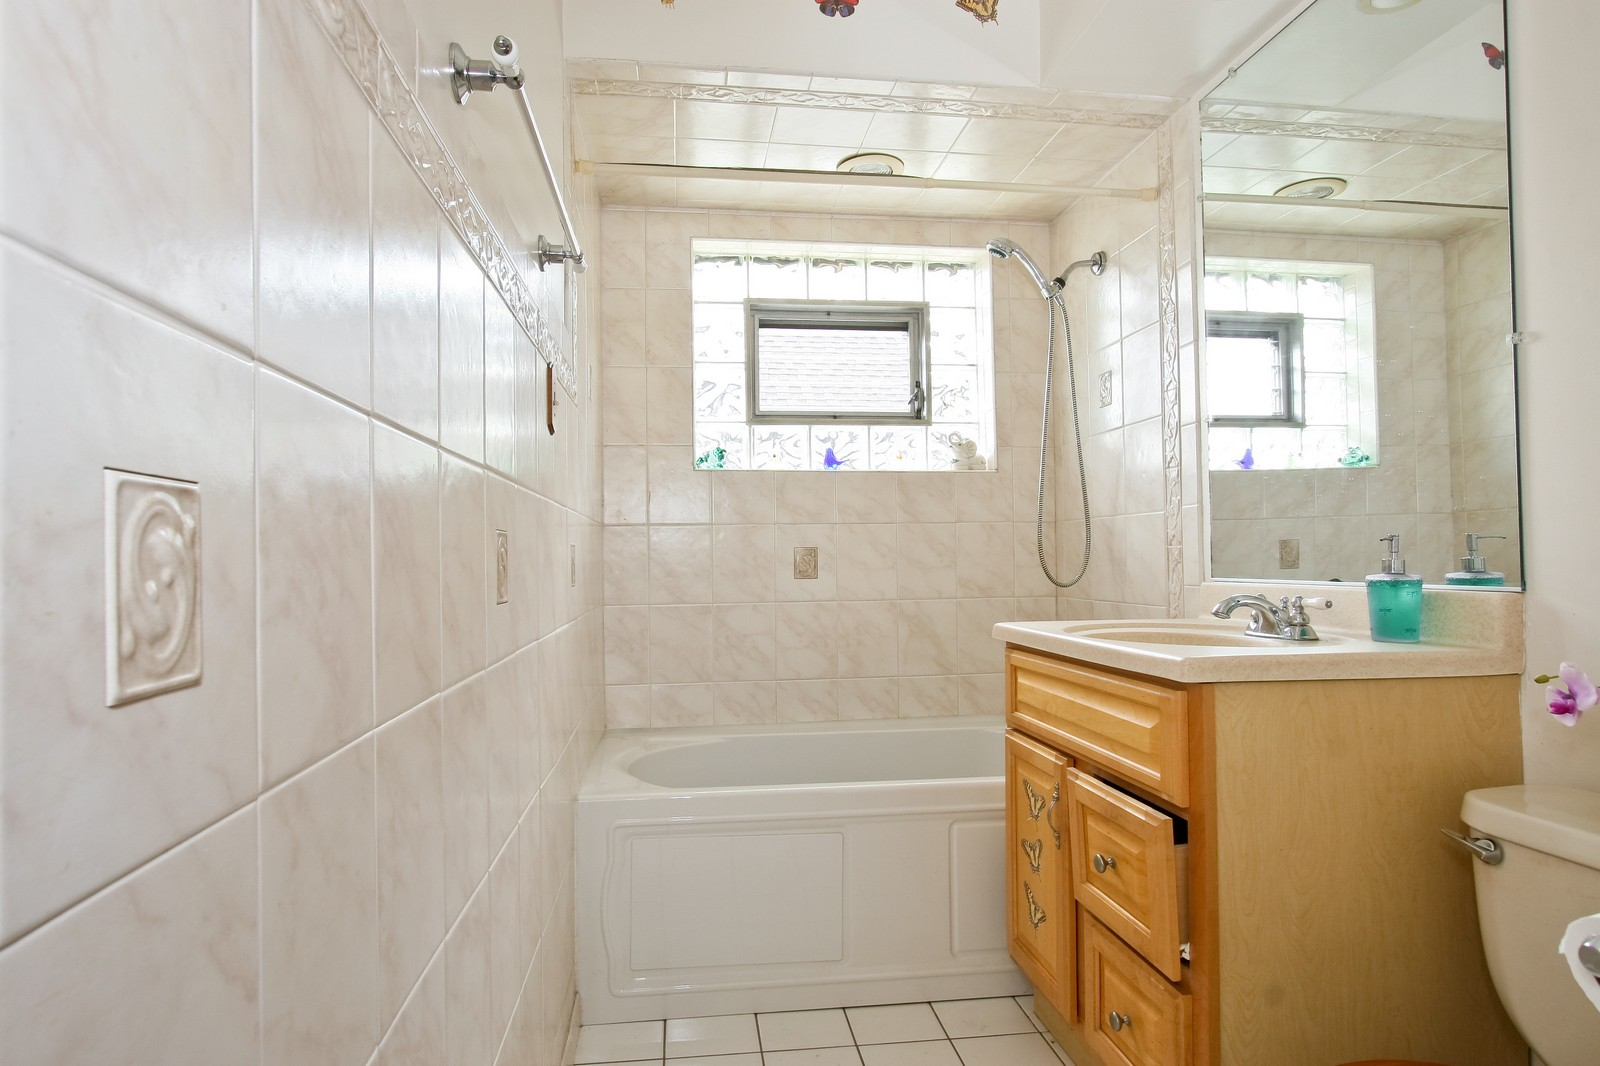 Real Estate Photography - 5813 S Natoma, Chicago, IL, 60638 - Bathroom